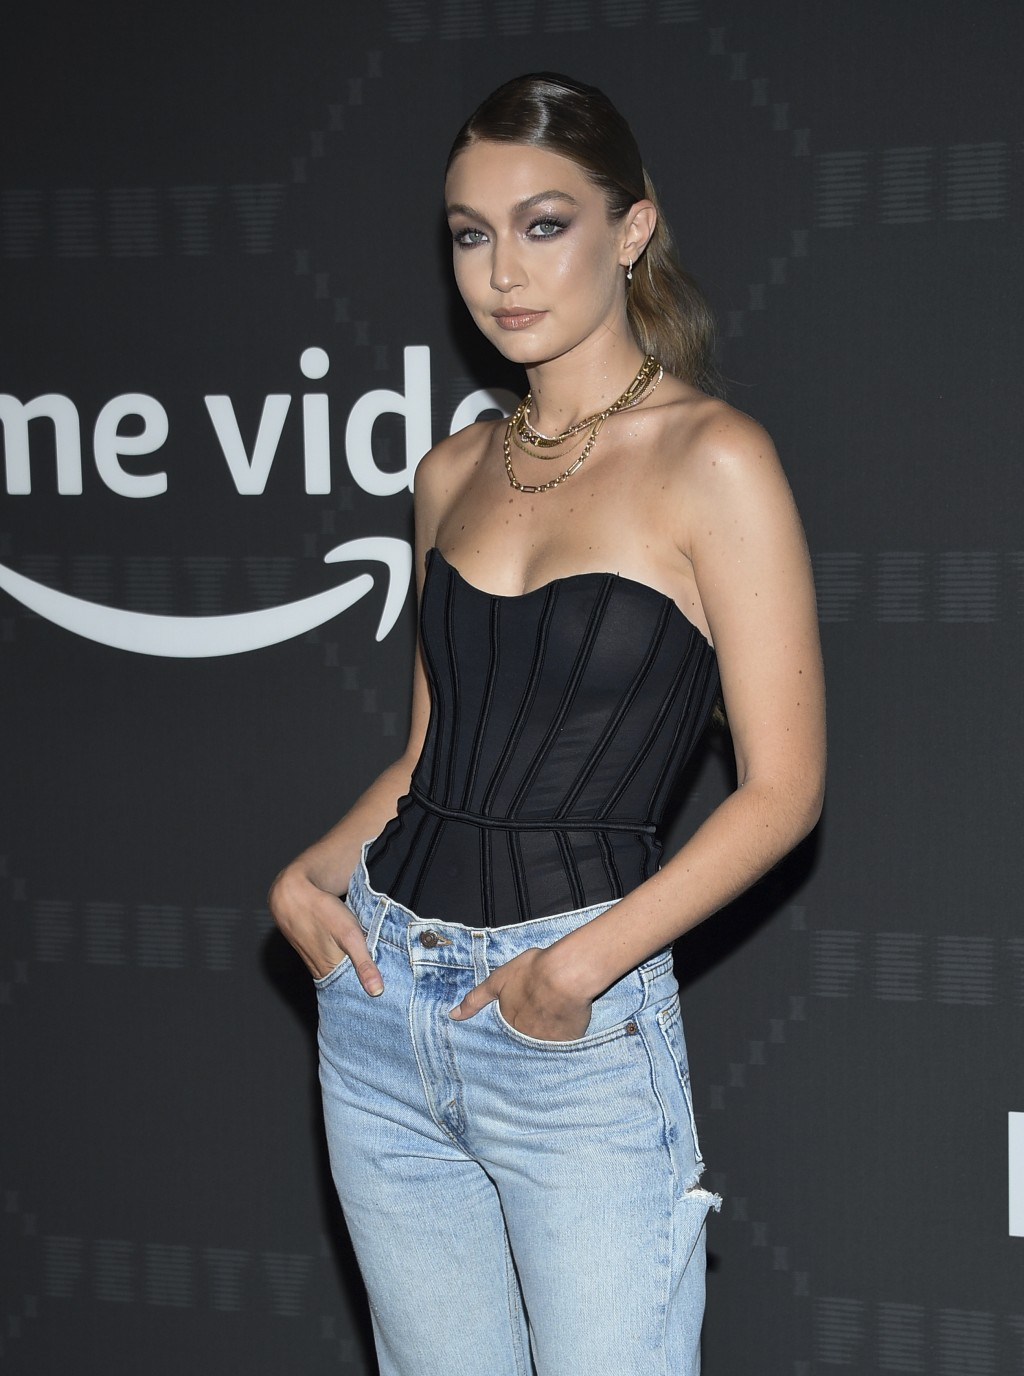 Model Gigi Hadid attends the Spring/Summer 2020 Savage X Fenty show, presented by Amazon Prime, at the Barclays Center on Tuesday, Sept, 10, 2019, in